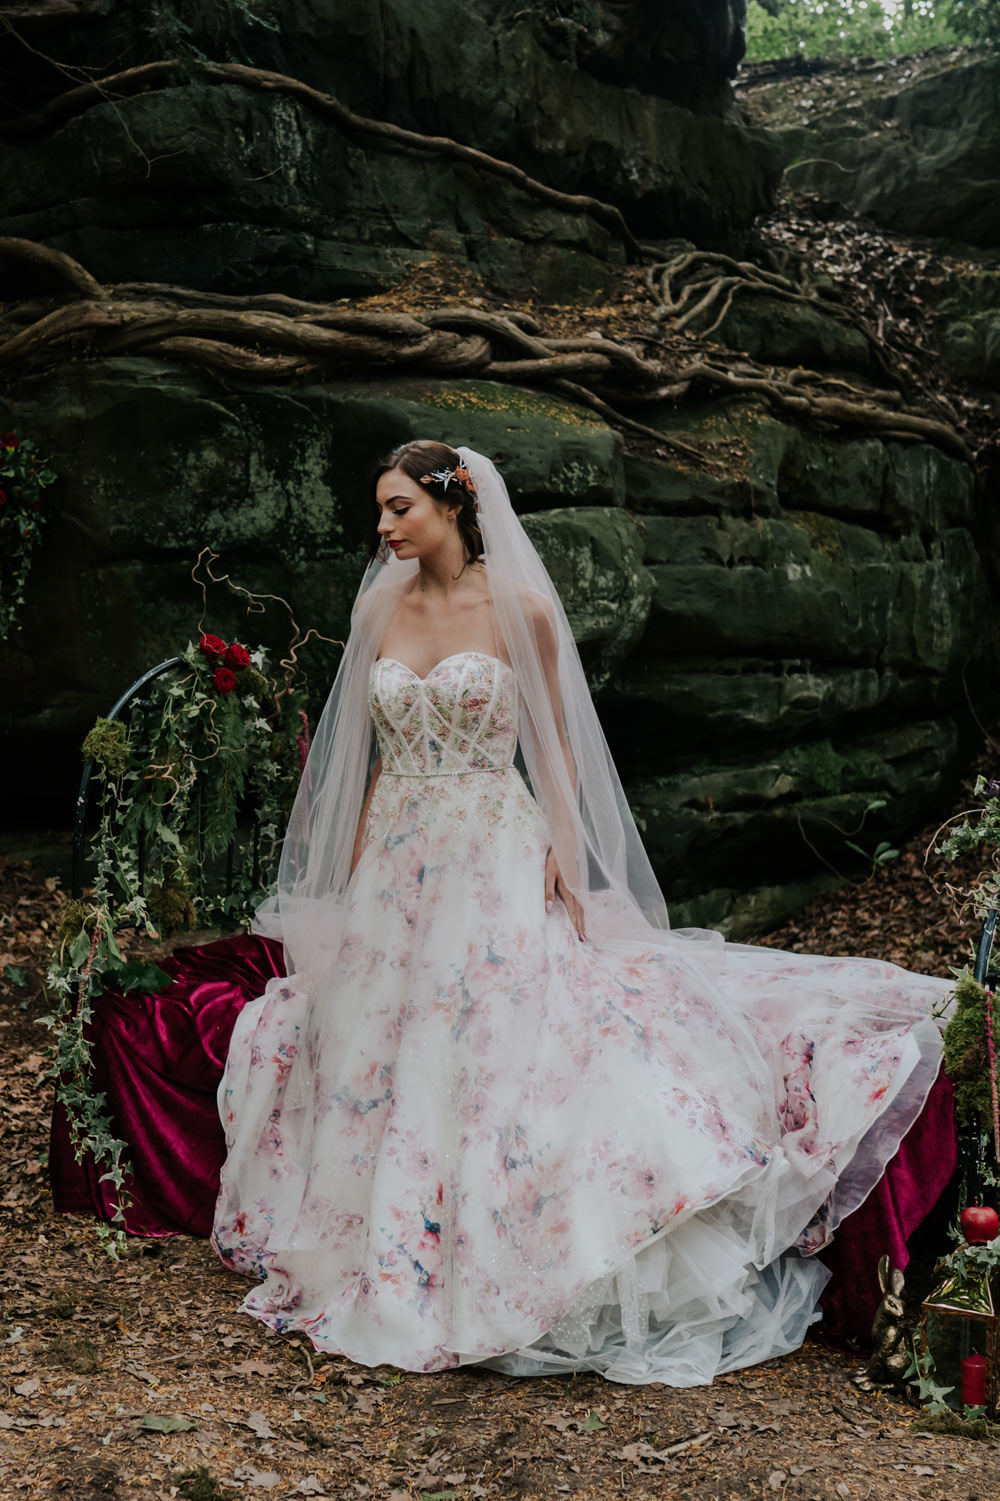 Dress Gown Bride Bridal Pink Floral Tulle Strapless Snow White Wedding Inspiration Joasis Photography